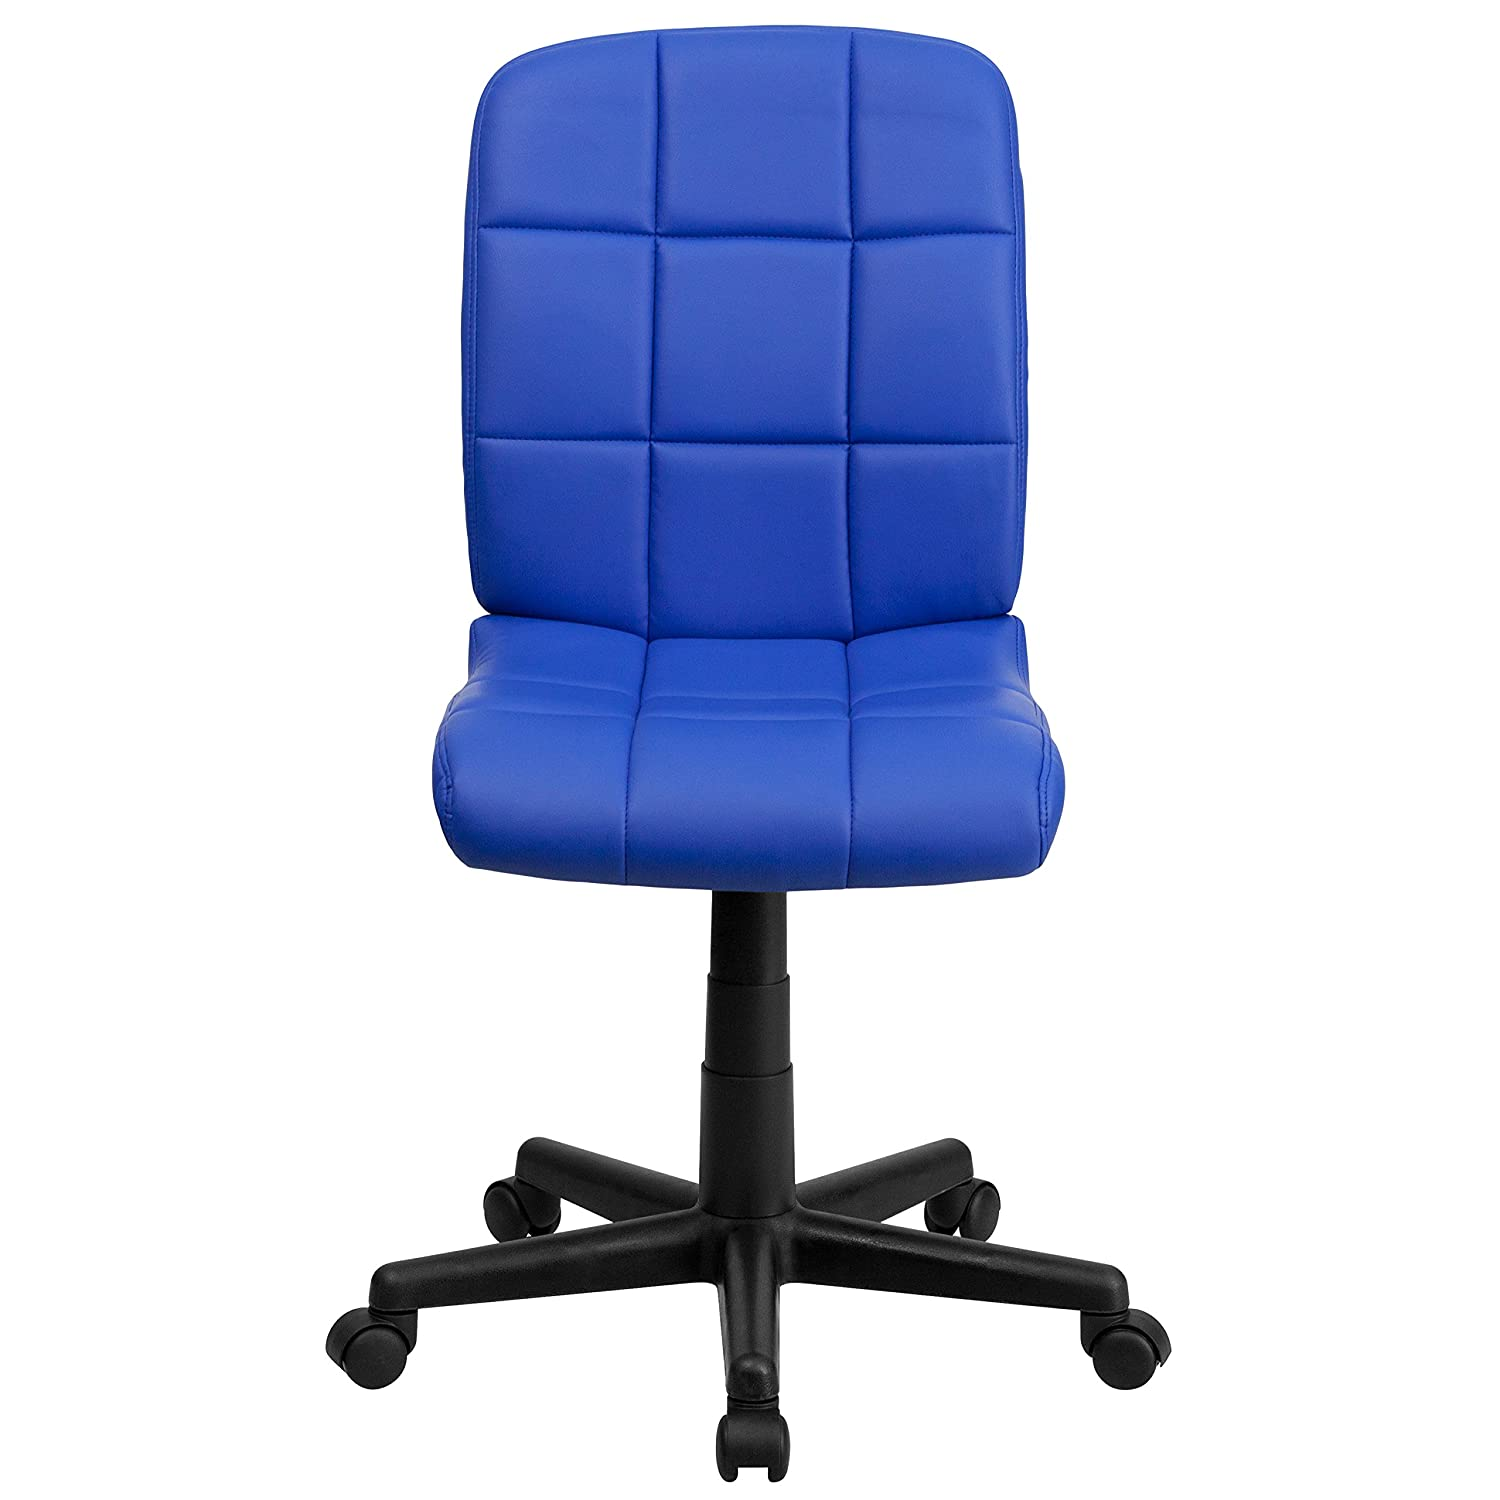 Blue Quilted Office Desk Chair Seat Home Swivel Wheels